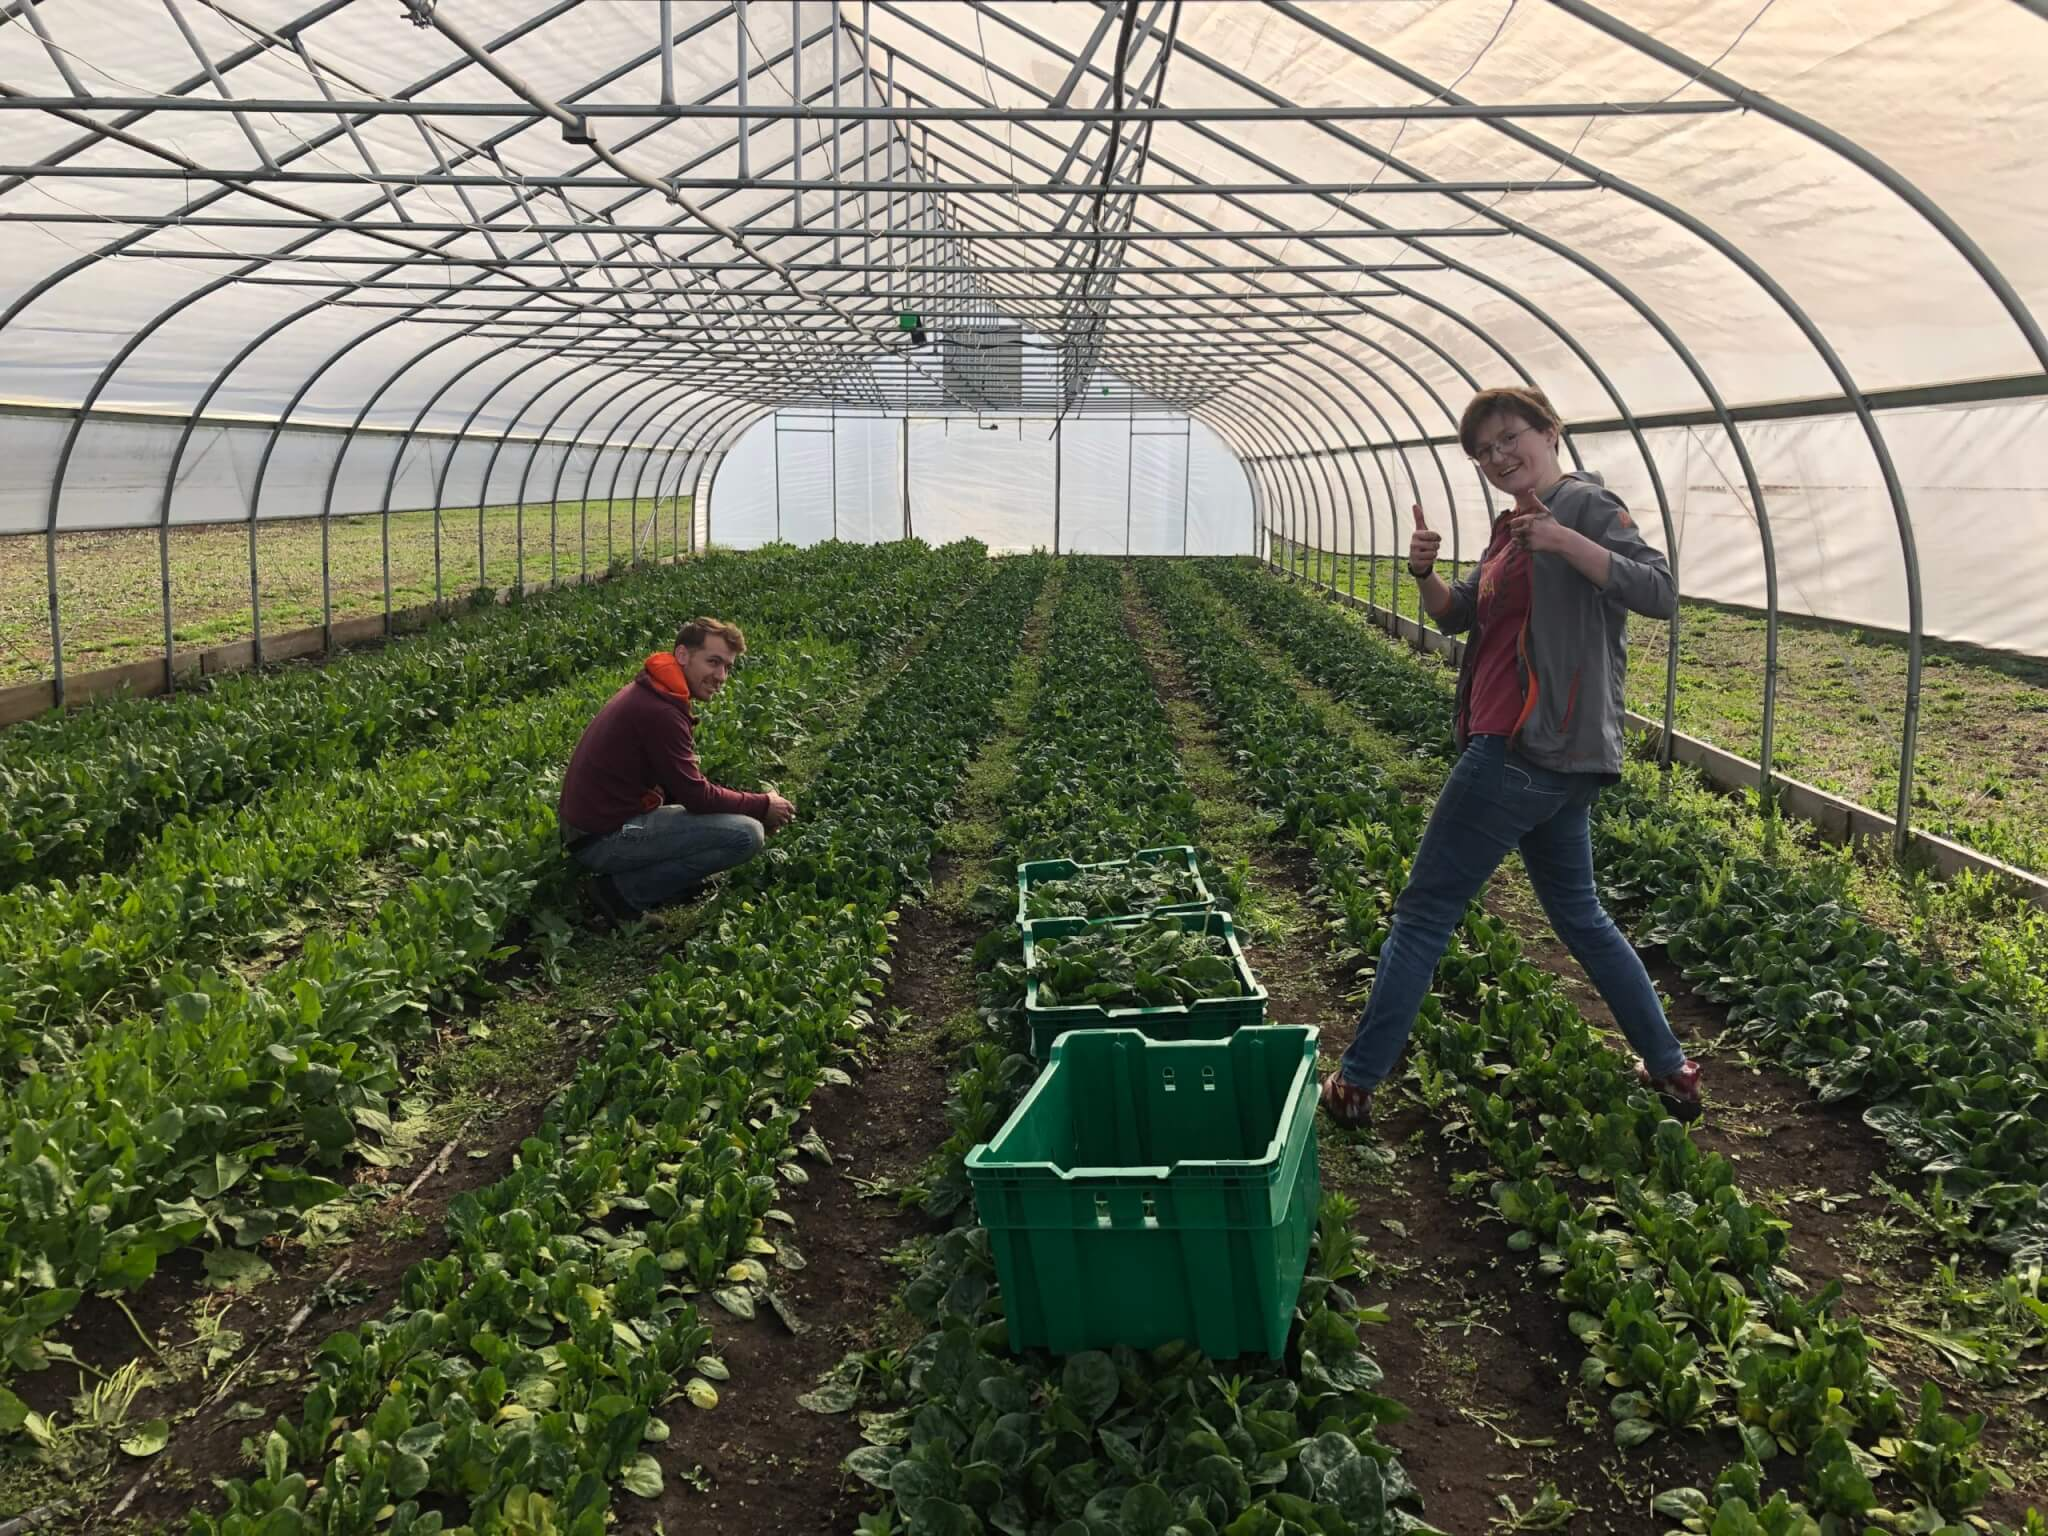 Students working at the Purdue Student Farm to harvest and deliver leafy greens to local food banks.